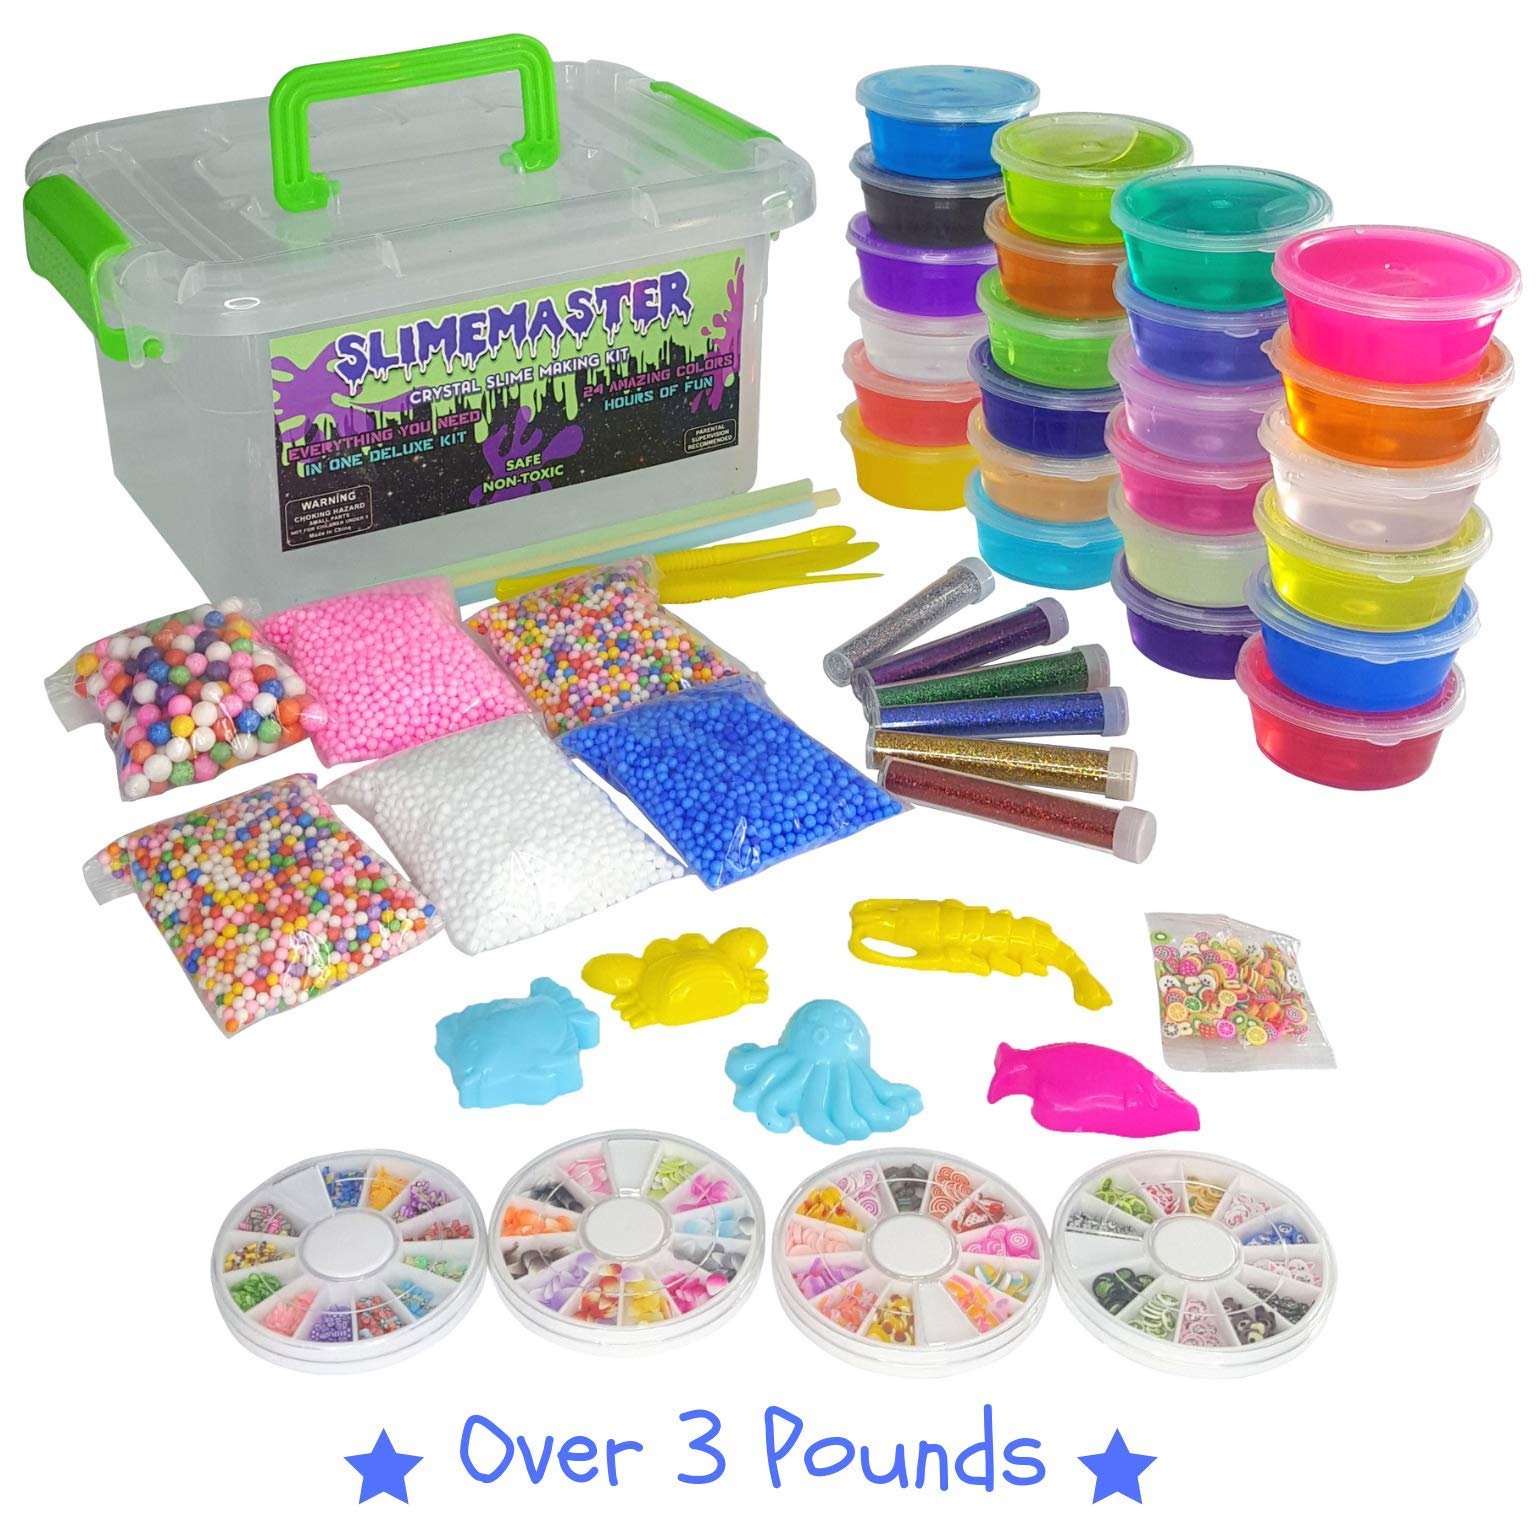 DIY Crystal Slime Making Kit - Super Slime in 24 Colors - Big Kids Craft Kit for Boys & Girls - Supplies Include Foam Balls, Glitter Bottles, Wheel & Fruit Slice Decorations in Clear Container by SLIMEMASTER